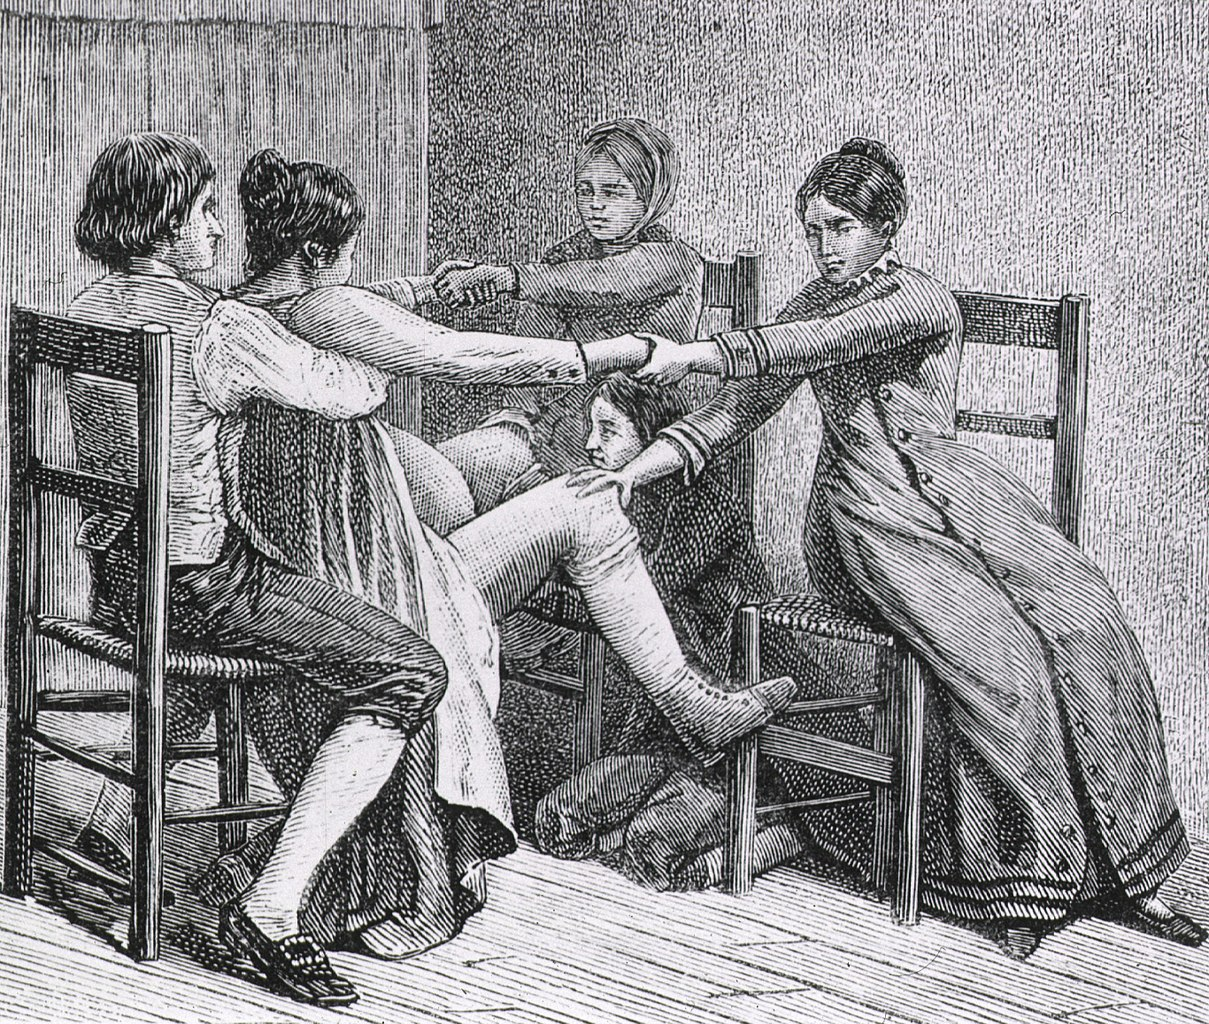 Two women and two men assist during childbirth. (Image: Wikimedia/National Library of Medicine/Gustave Joseph Witkowski)